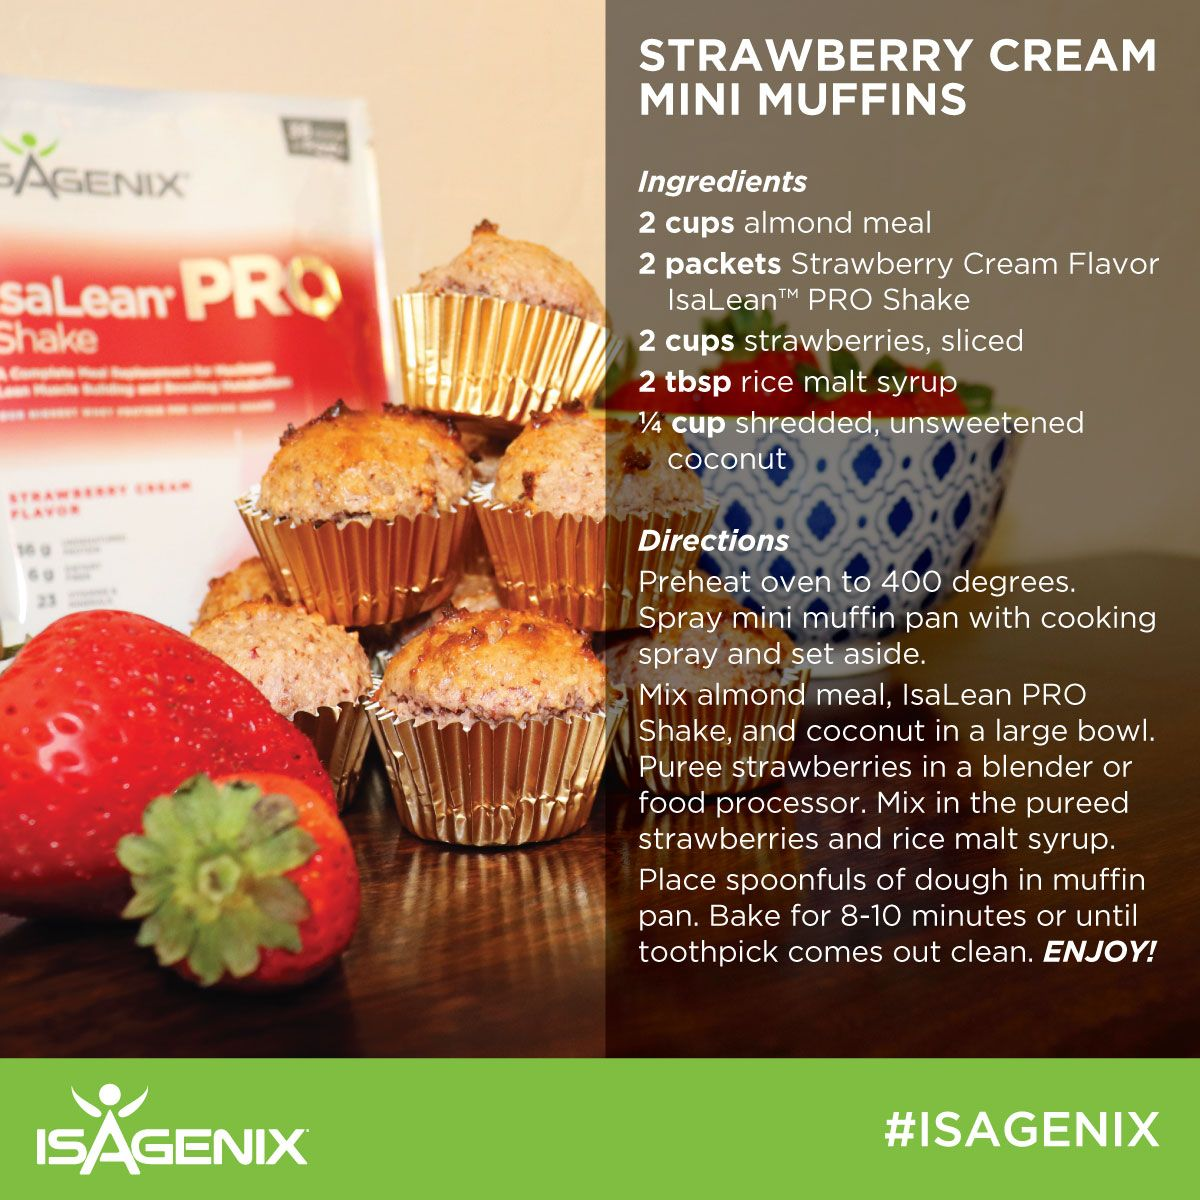 Try These Strawberry Cream Mini Muffins For A Delicious